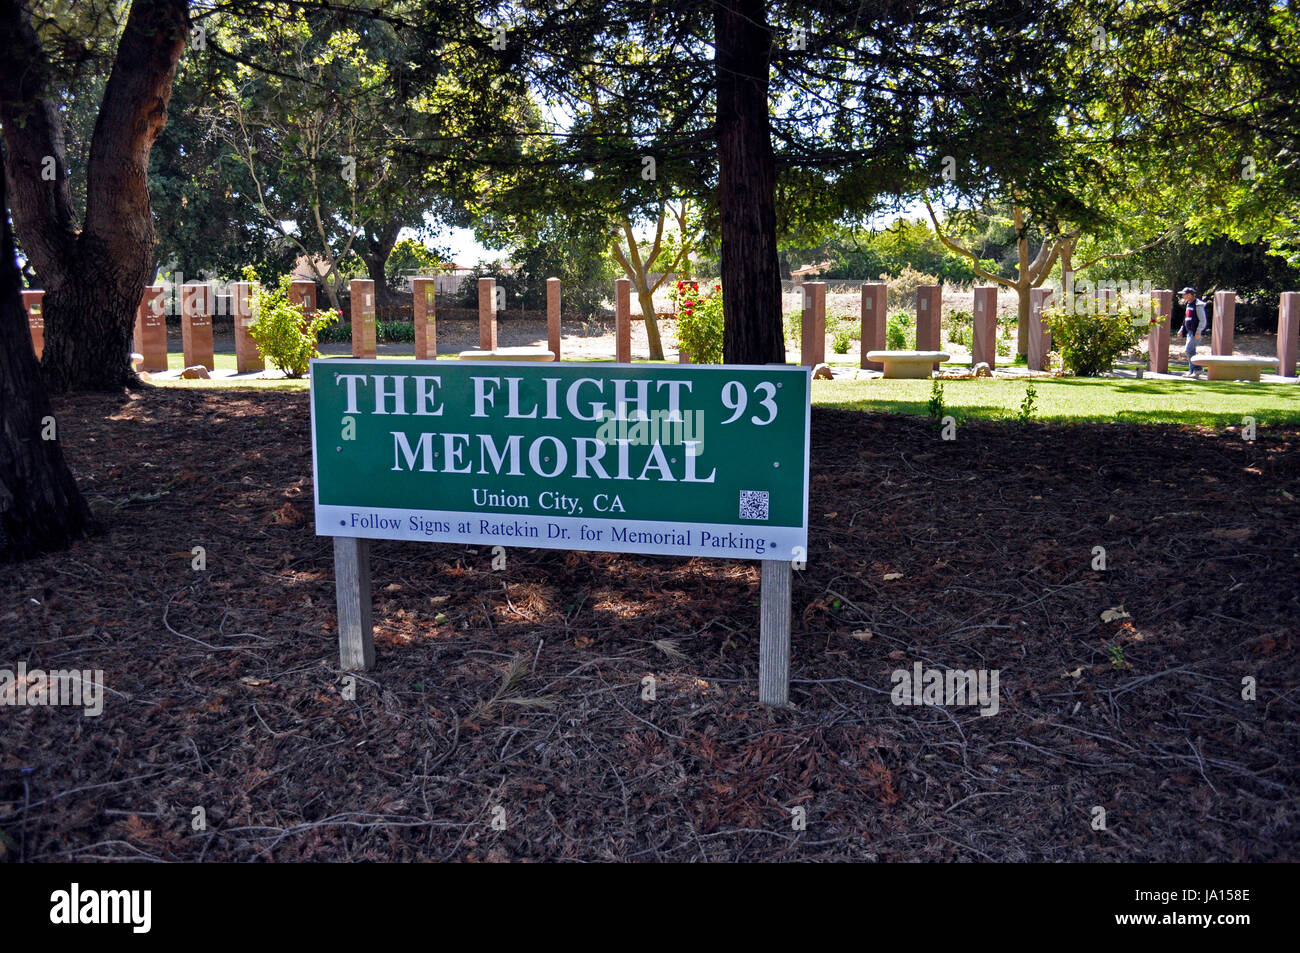 9/11, The Flight 93 Memorial, Union City, California, USA - Stock Image